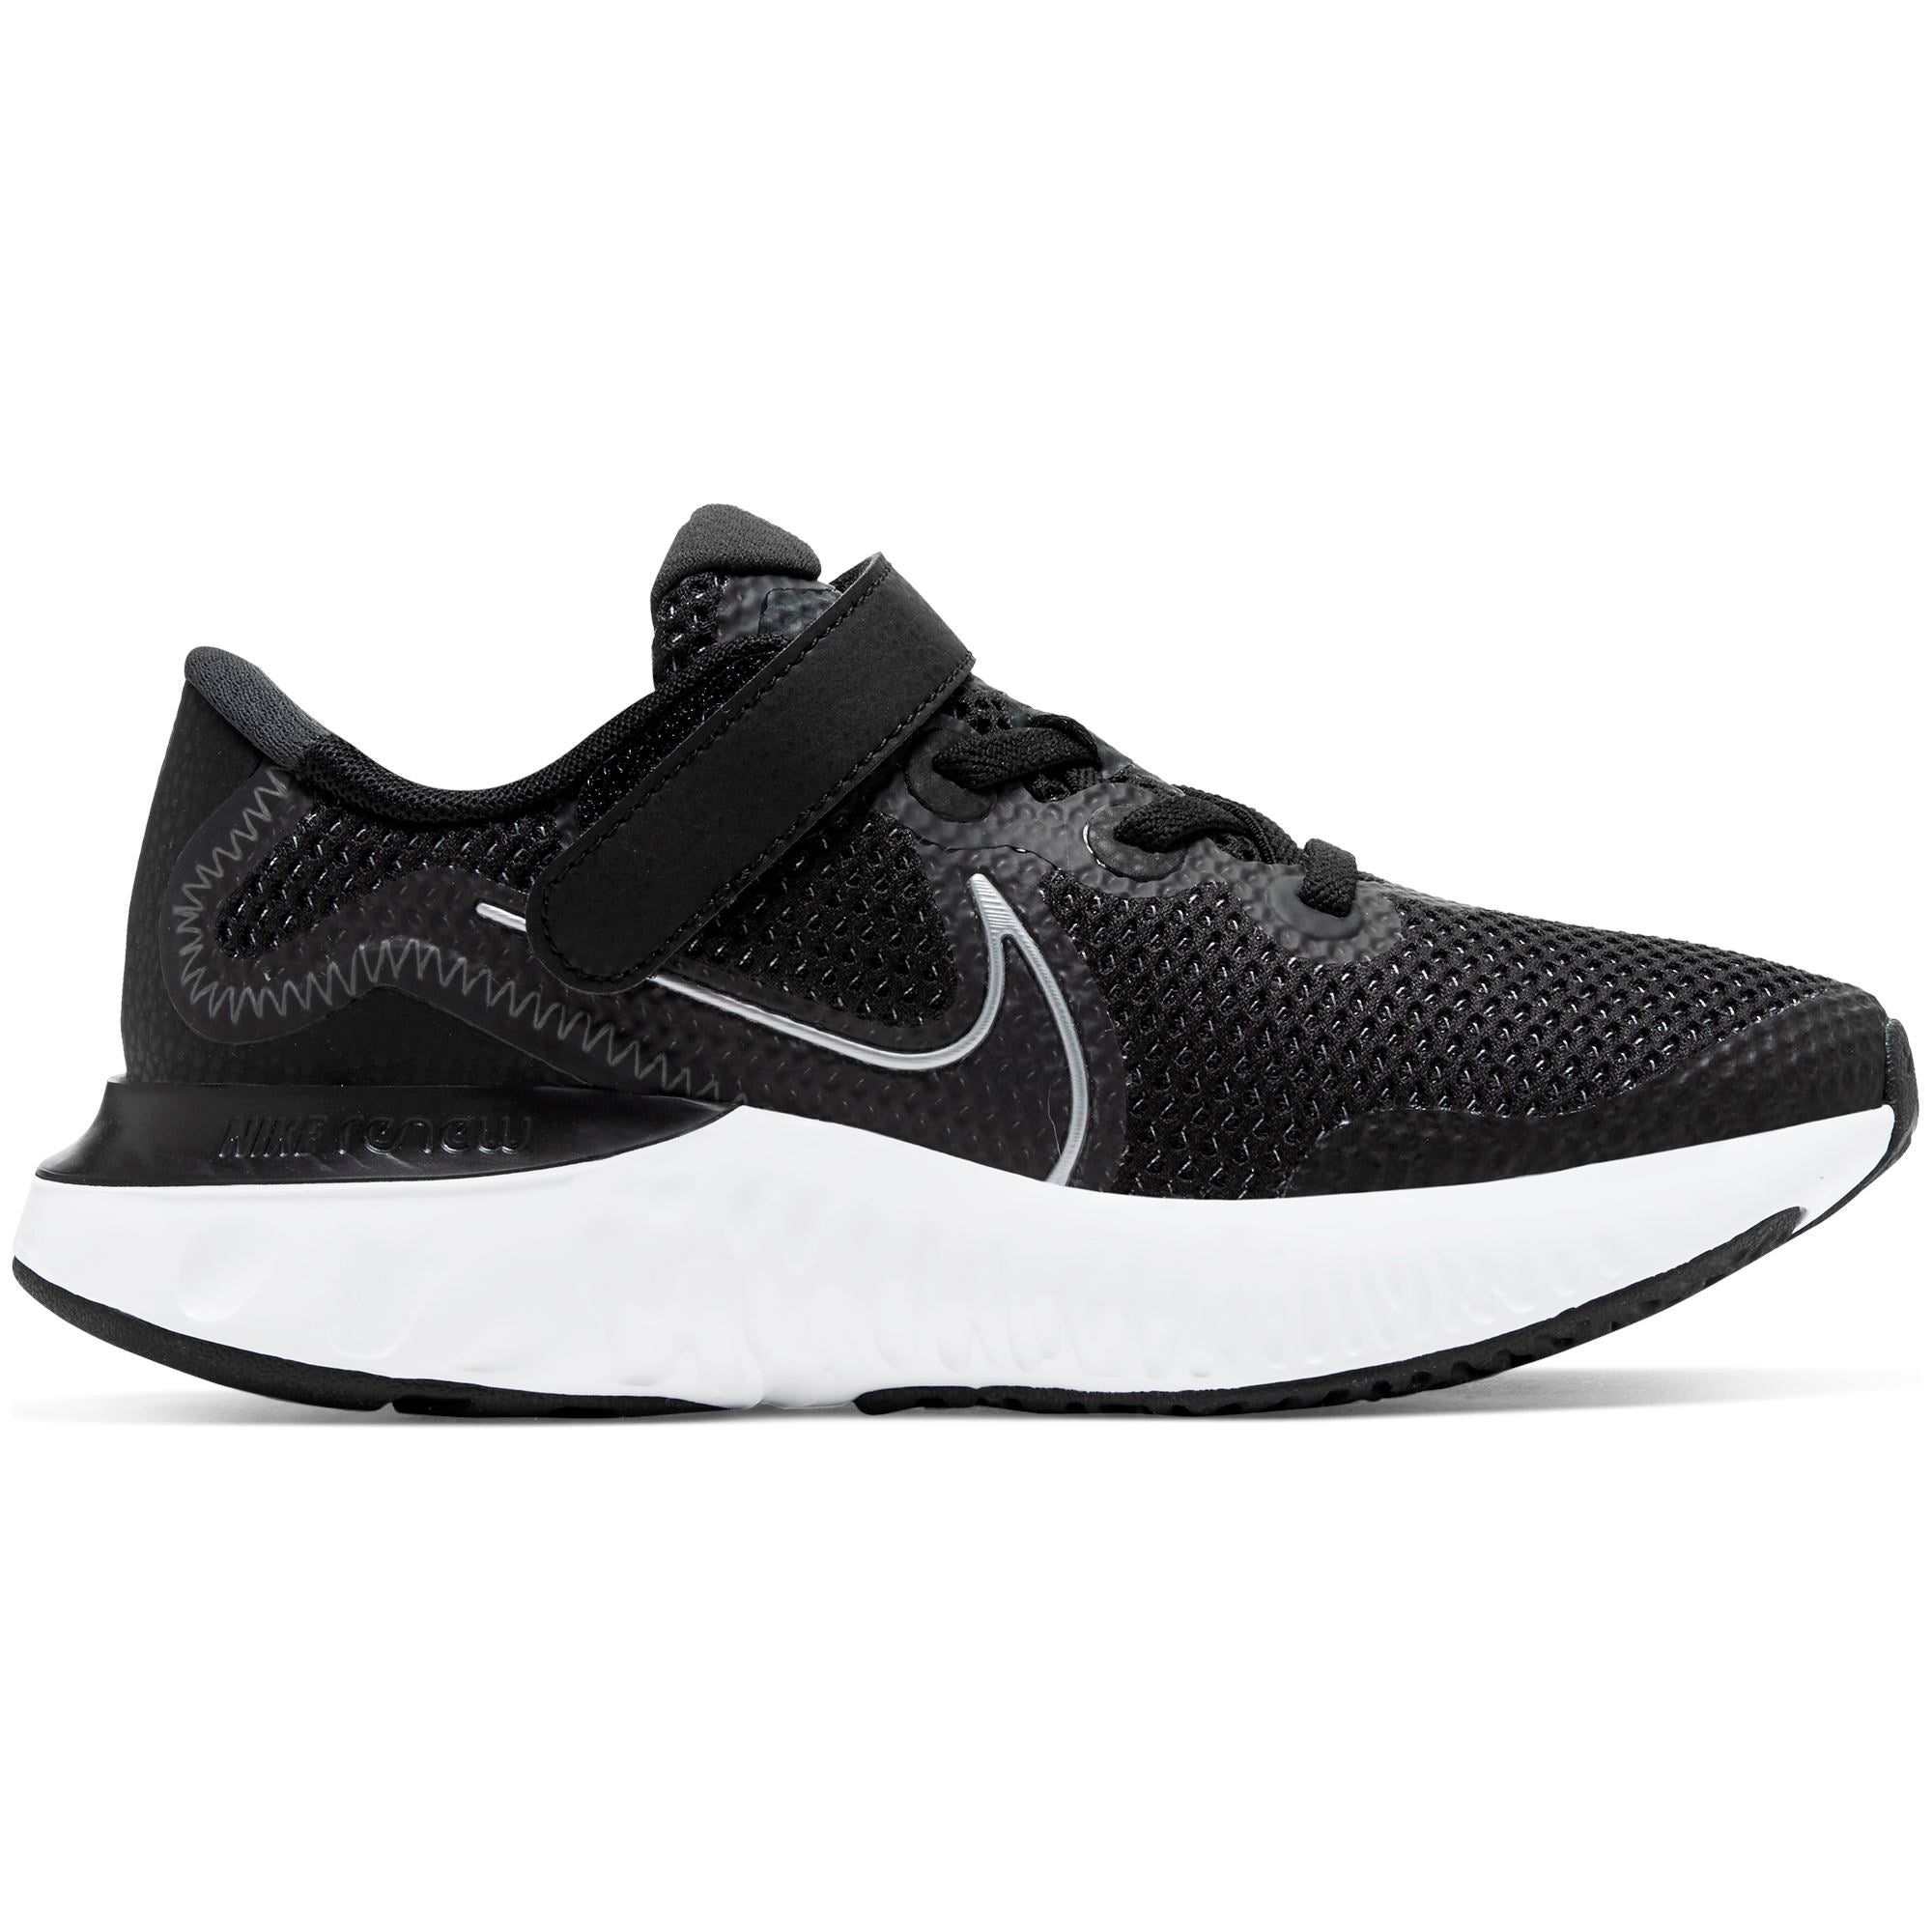 Nike Little Kids Renew Run - Black/Metallic Silver-White SP-Footwear-Kids Nike